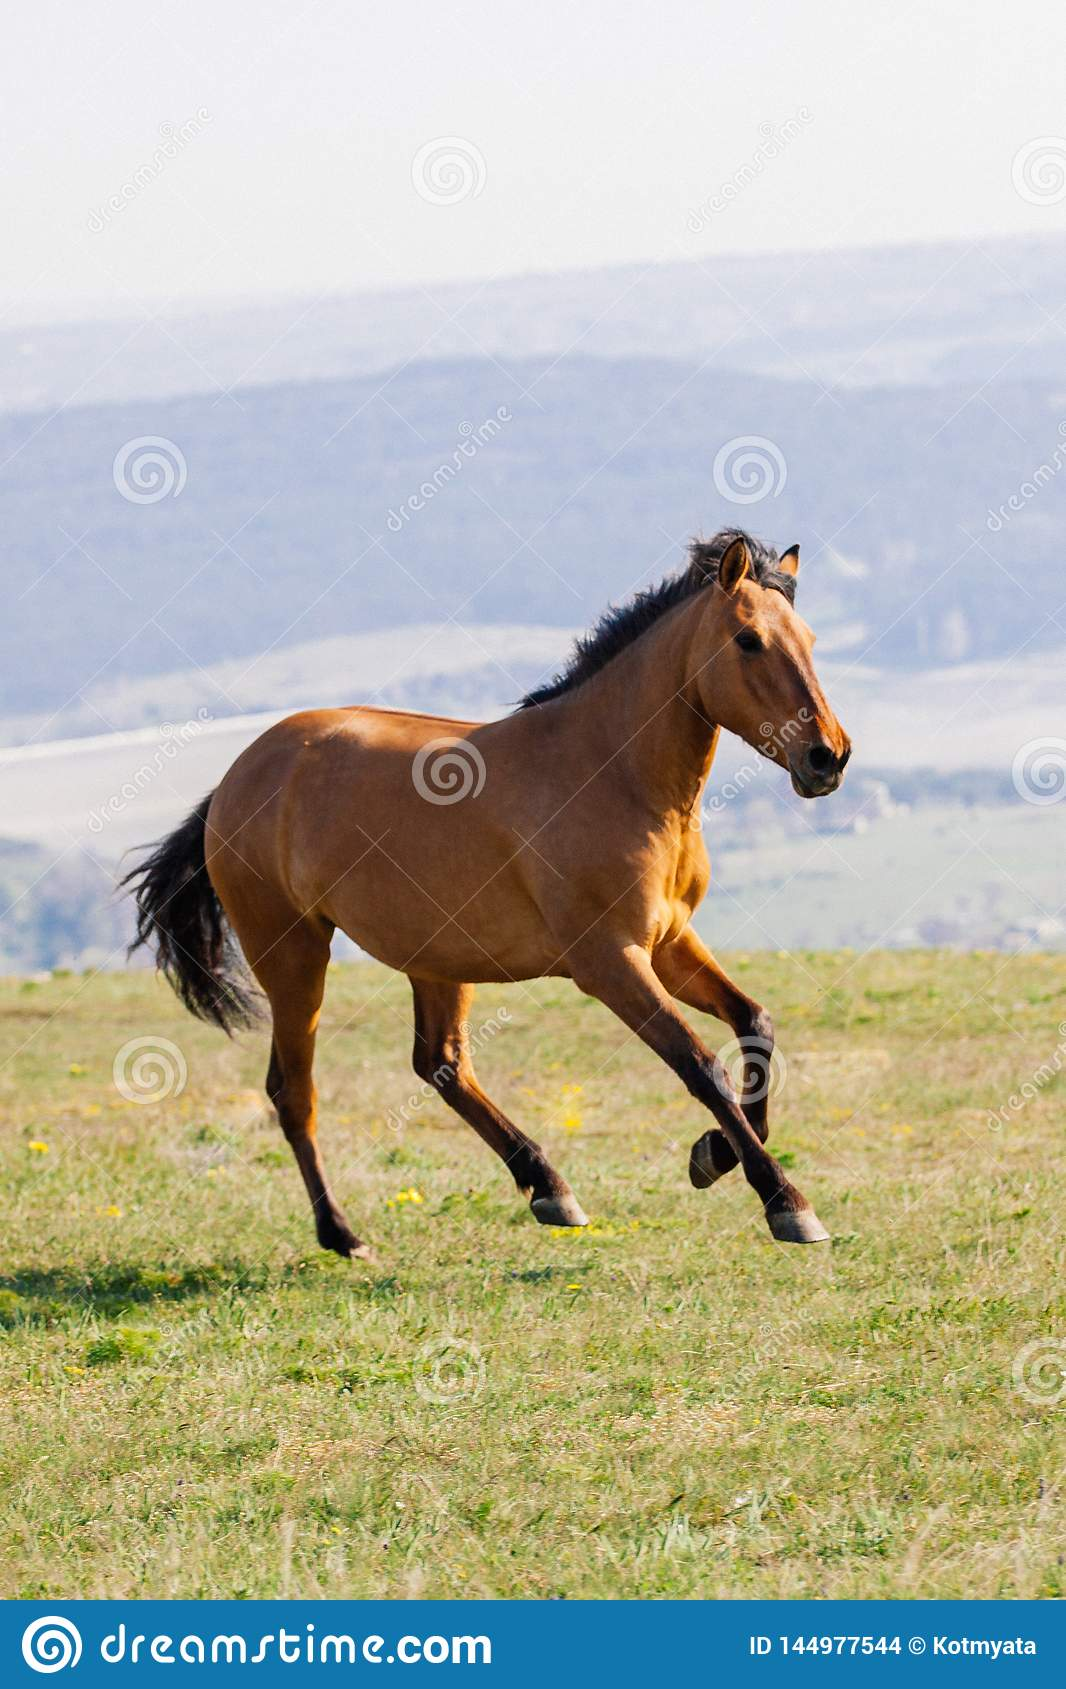 Red horse runs on a green field on clouds background